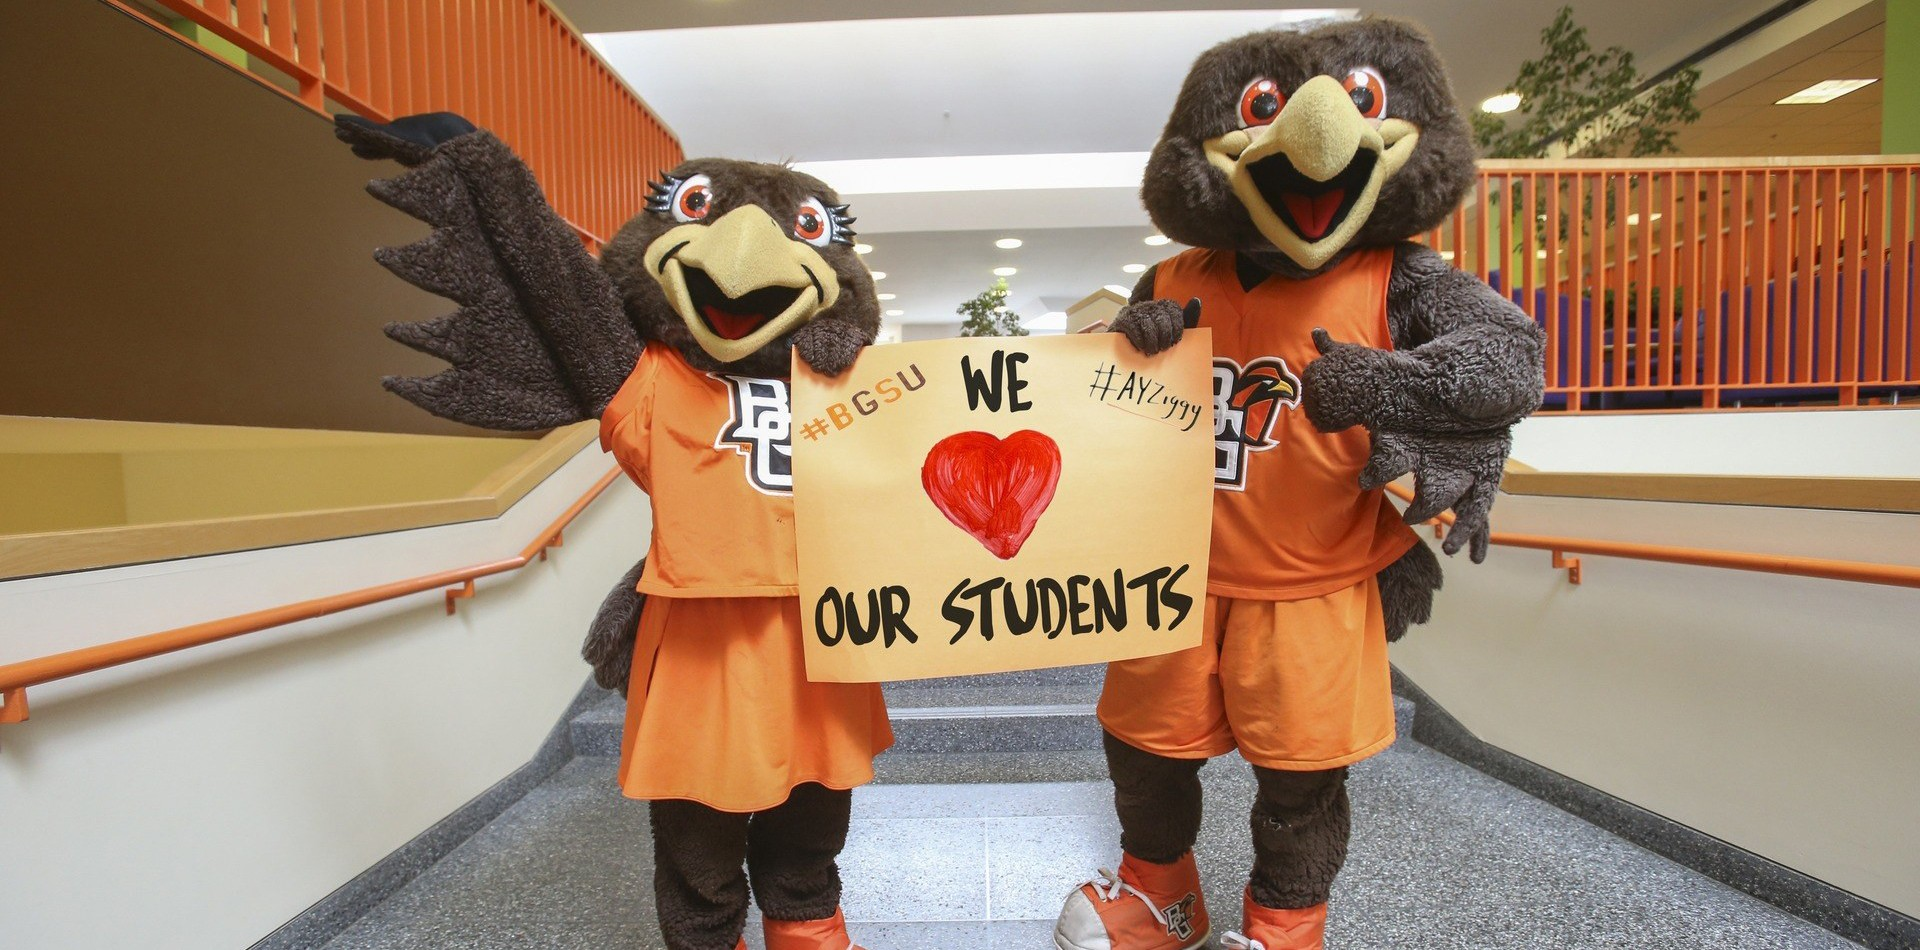 Freddie and Frieda holding we heart our students sign